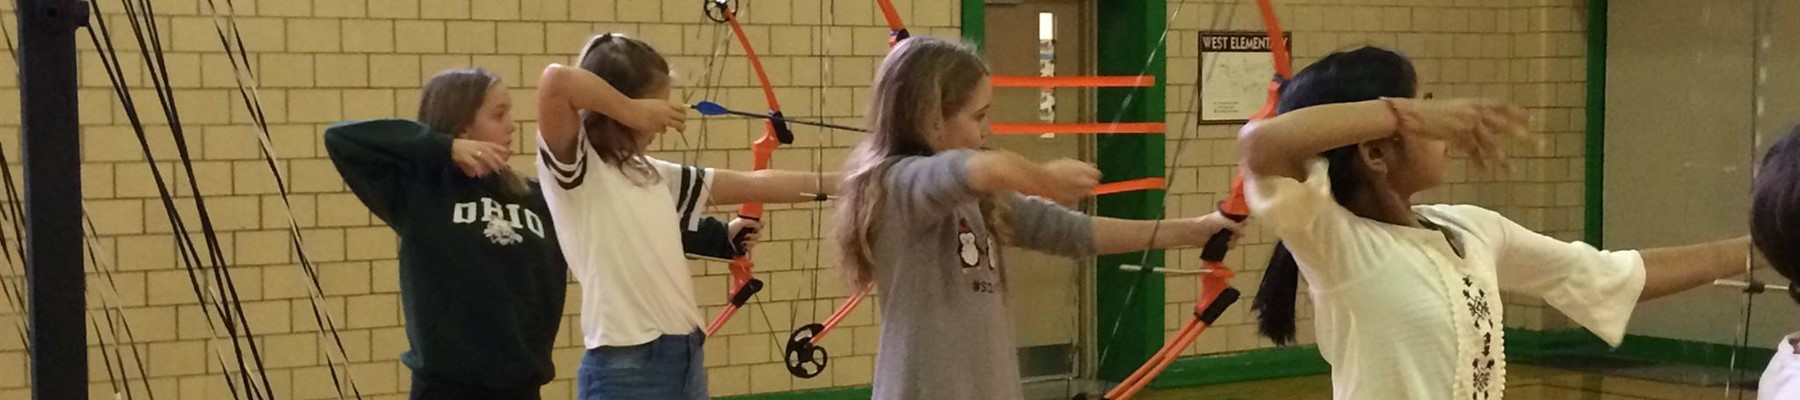 West Elementary Students - Archery in PE Class